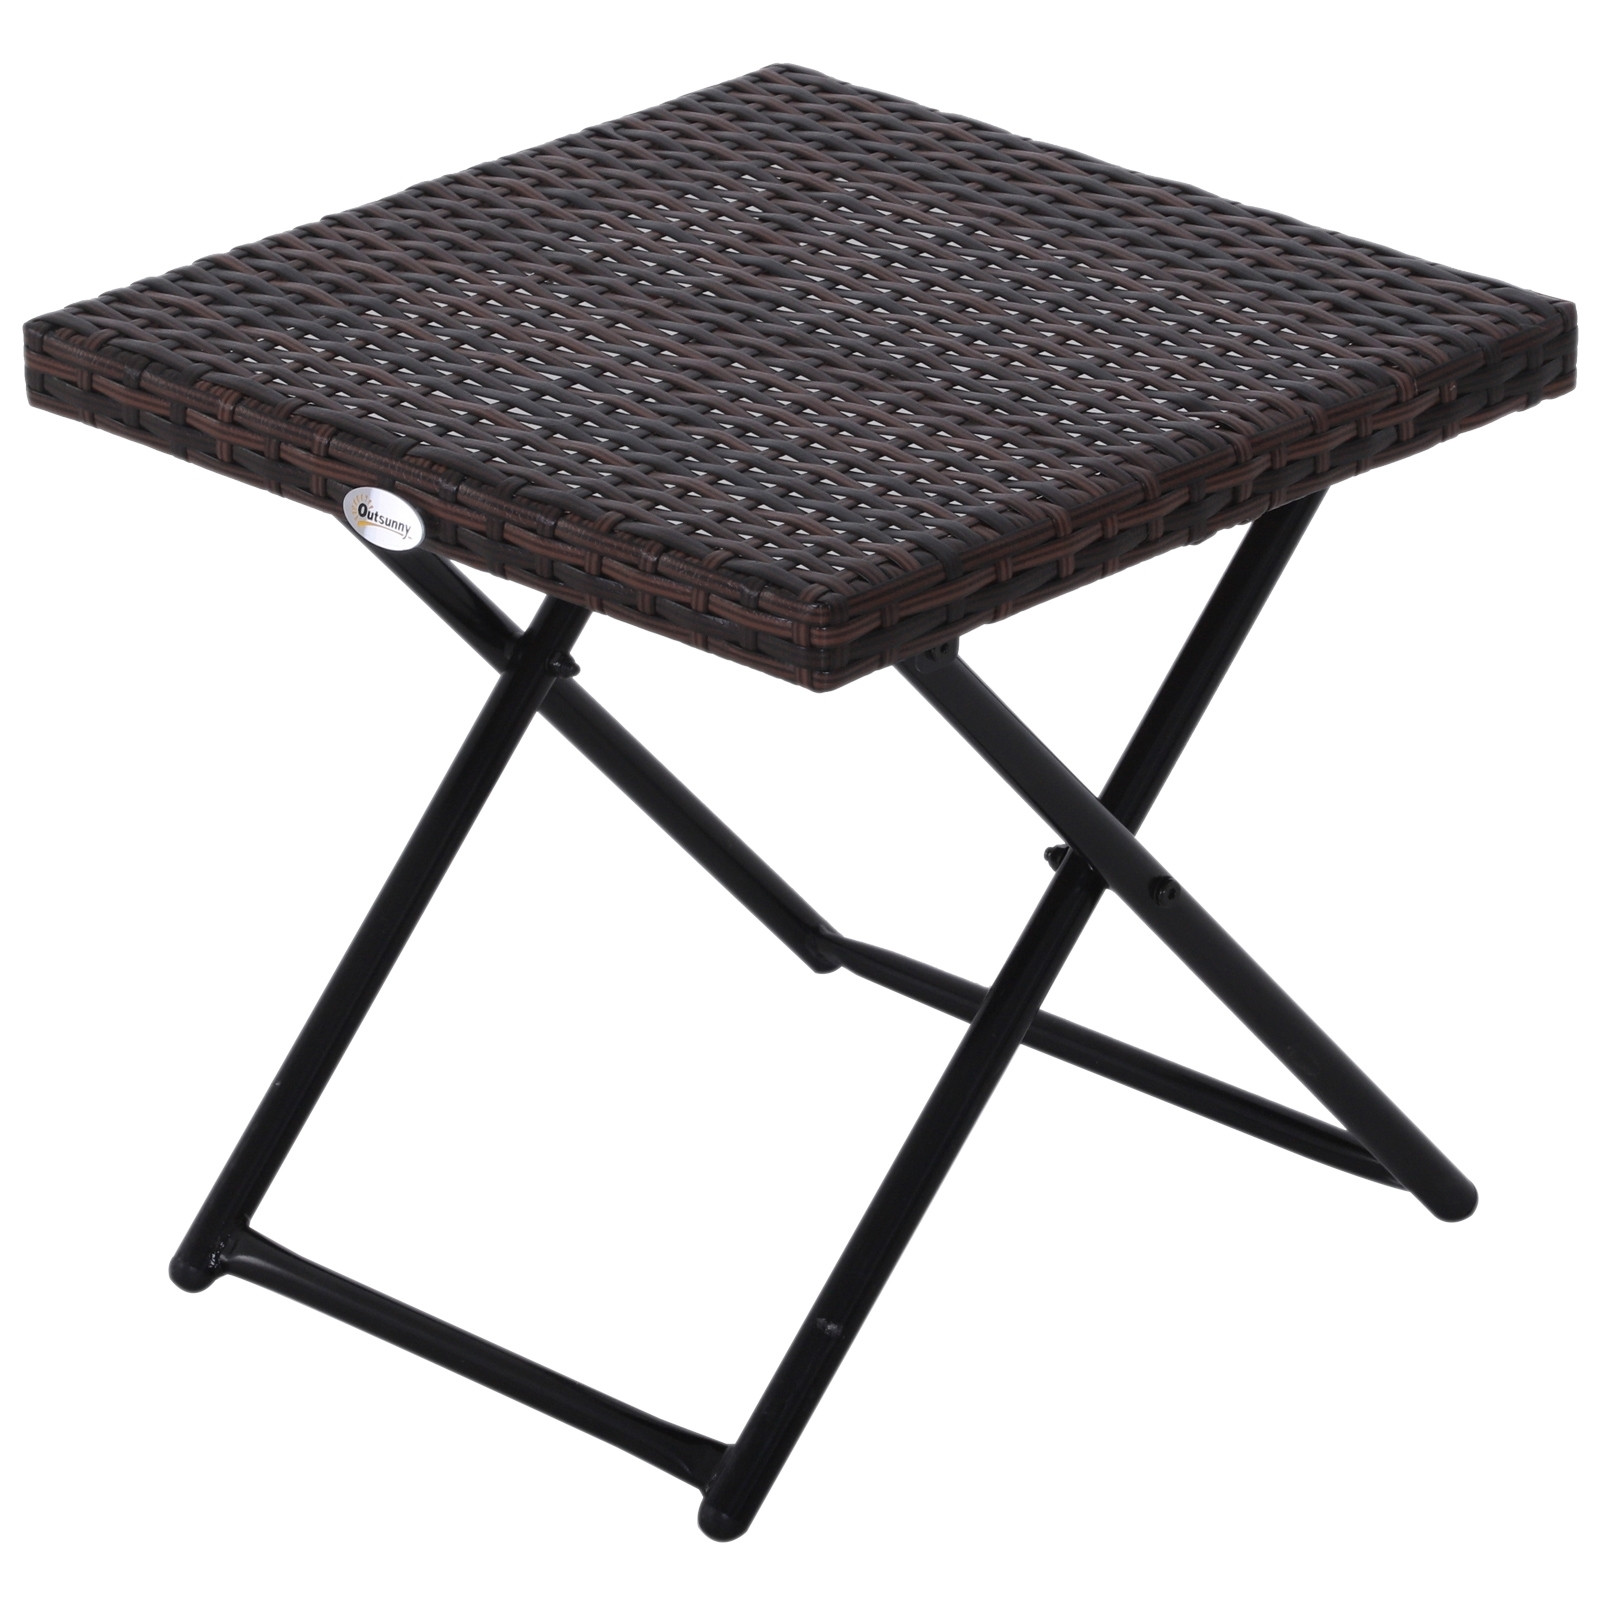 Table De Jardin Acacia Frais Table Basse D Appoint Pliante Bidart Marron Of 24 Inspirant Table De Jardin Acacia